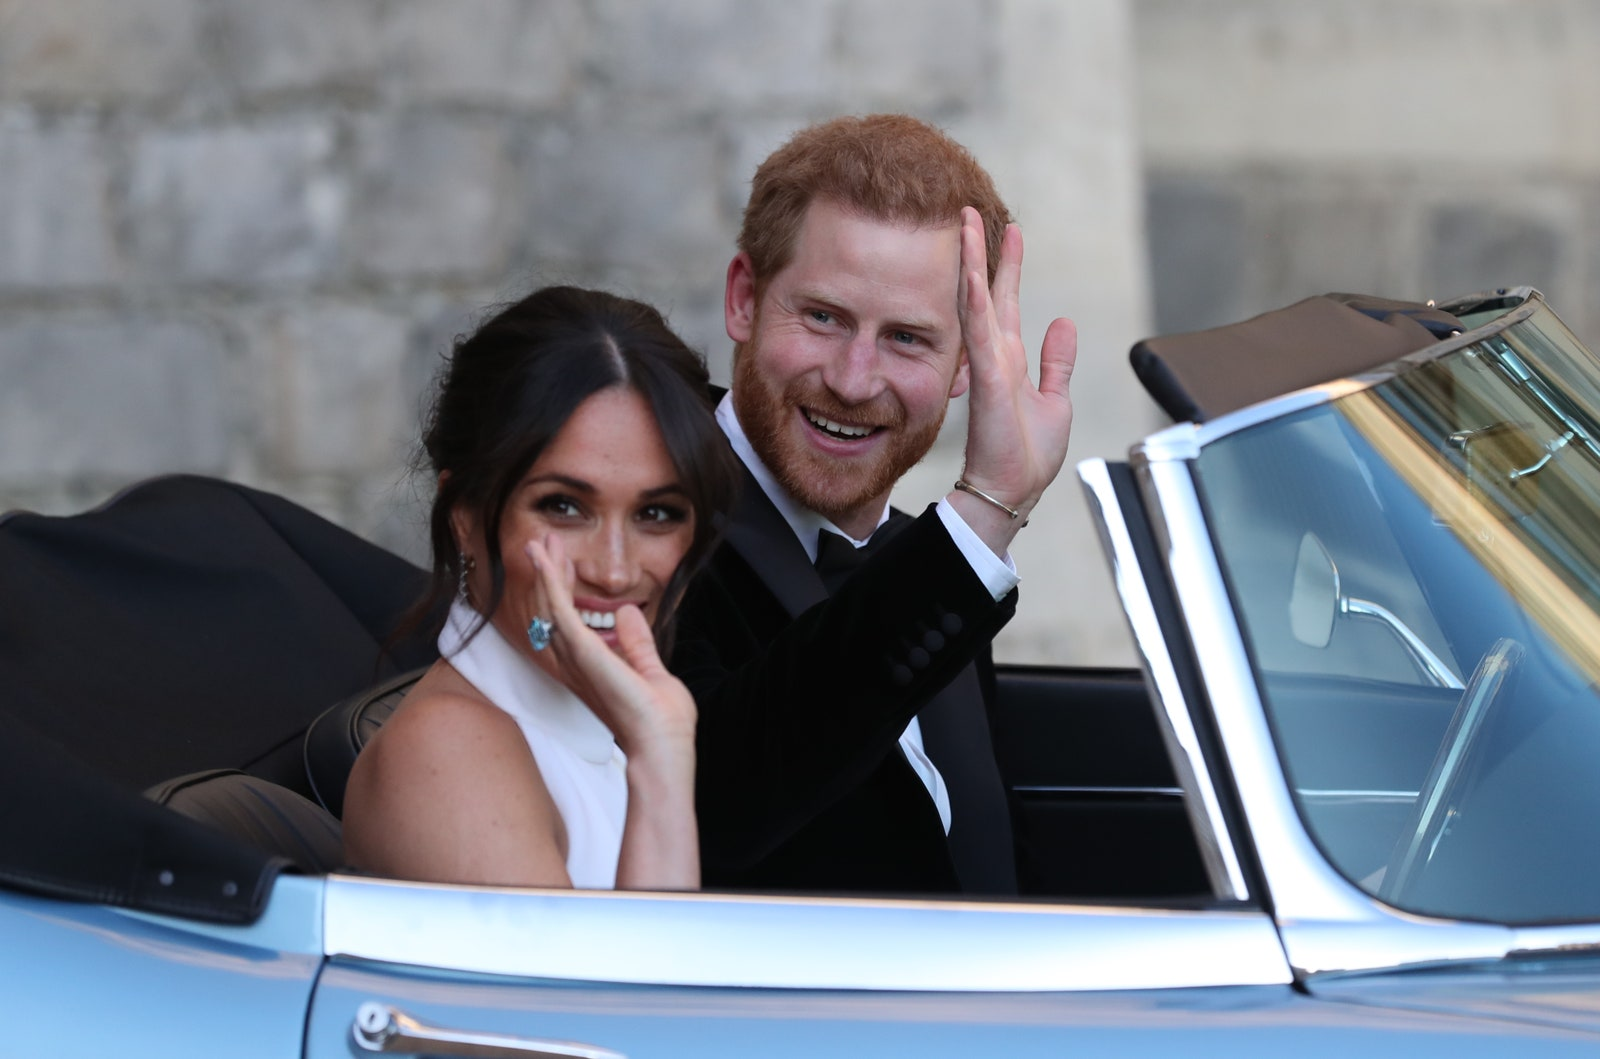 Meghan Markle and Prince Harry head to their evening wedding reception.